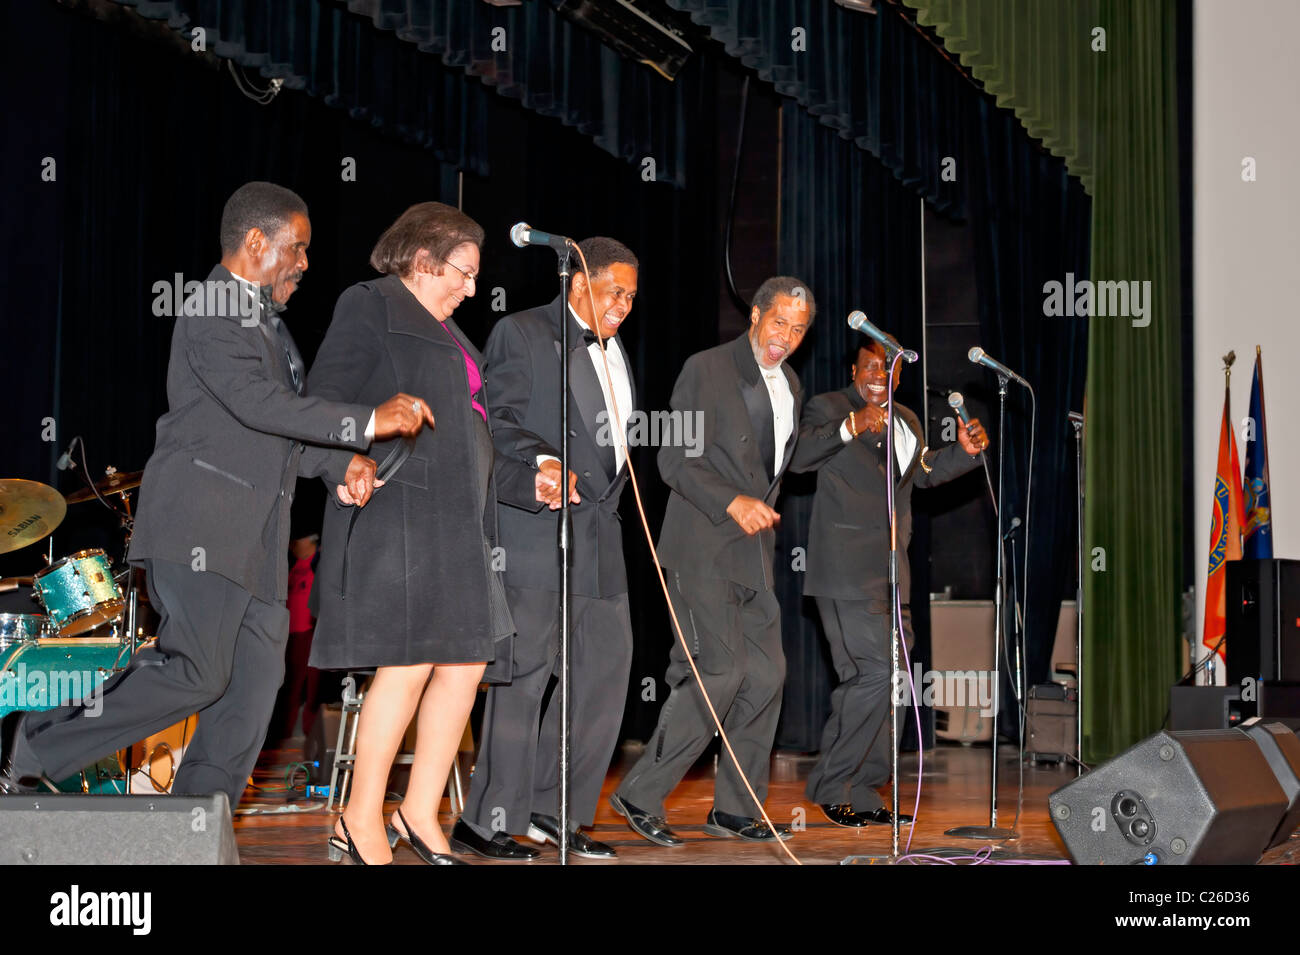 APR 2 2011 - BELLMORE, NY: Audience participation at Doo Wop concert, Fan dancing on stage The Original Cornell - Stock Image